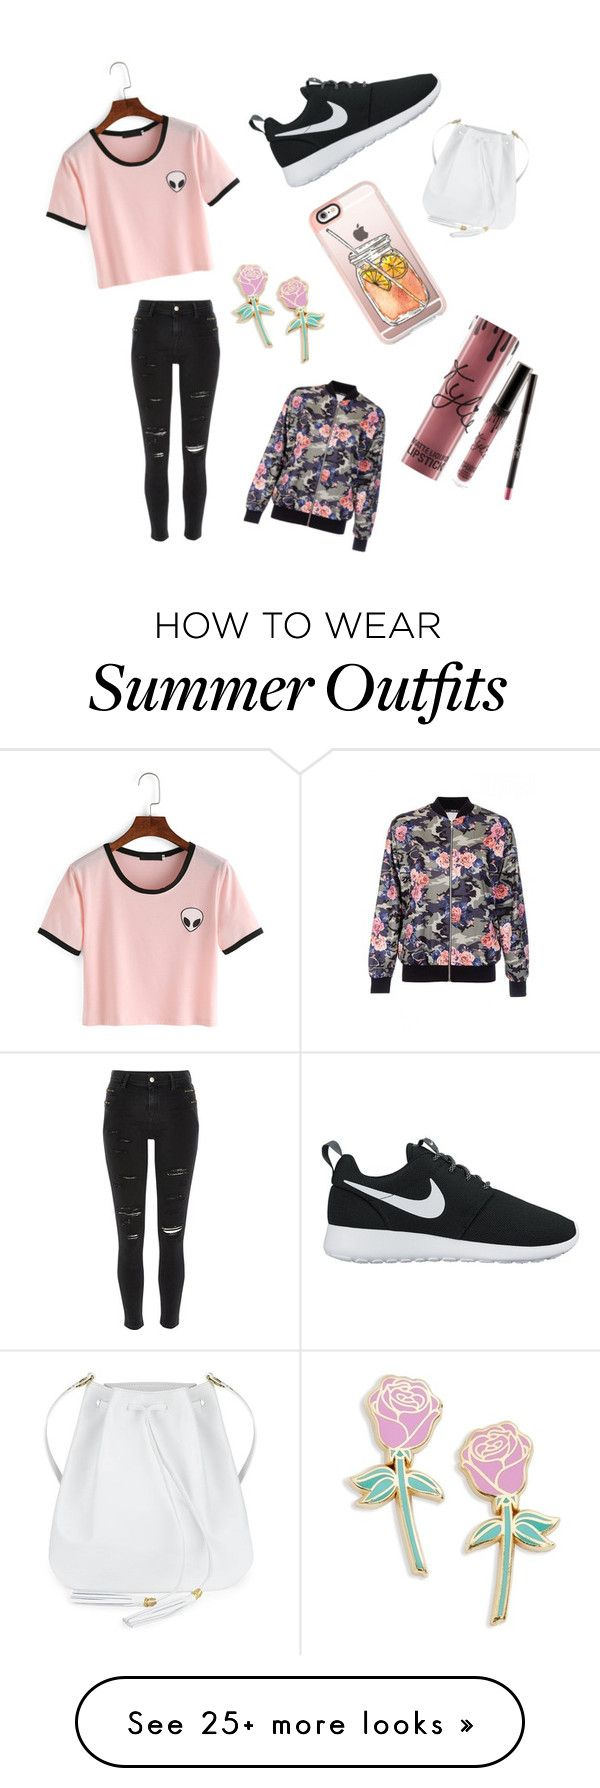 """""""Cutest outfit ever!"""" by pretty-emily on Polyvore featuring River Isla..."""